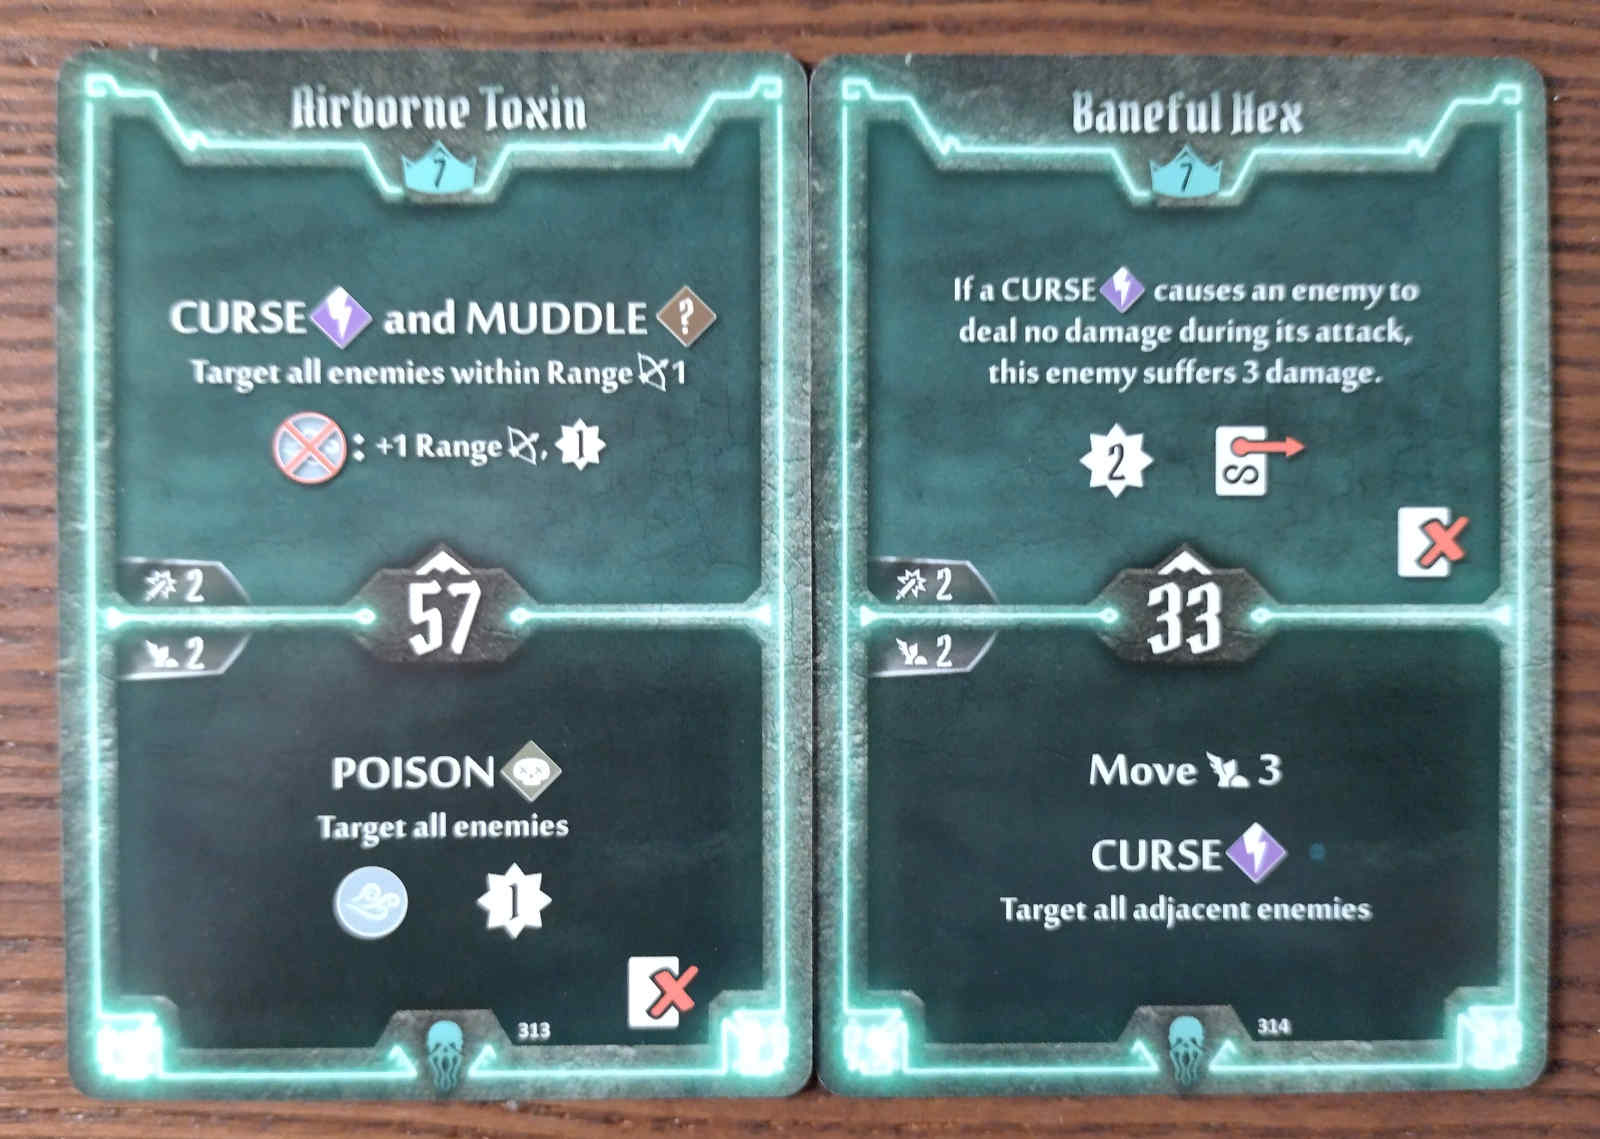 Level 7 Plagueherald cards - Airborne Toxin and Baneful Hex